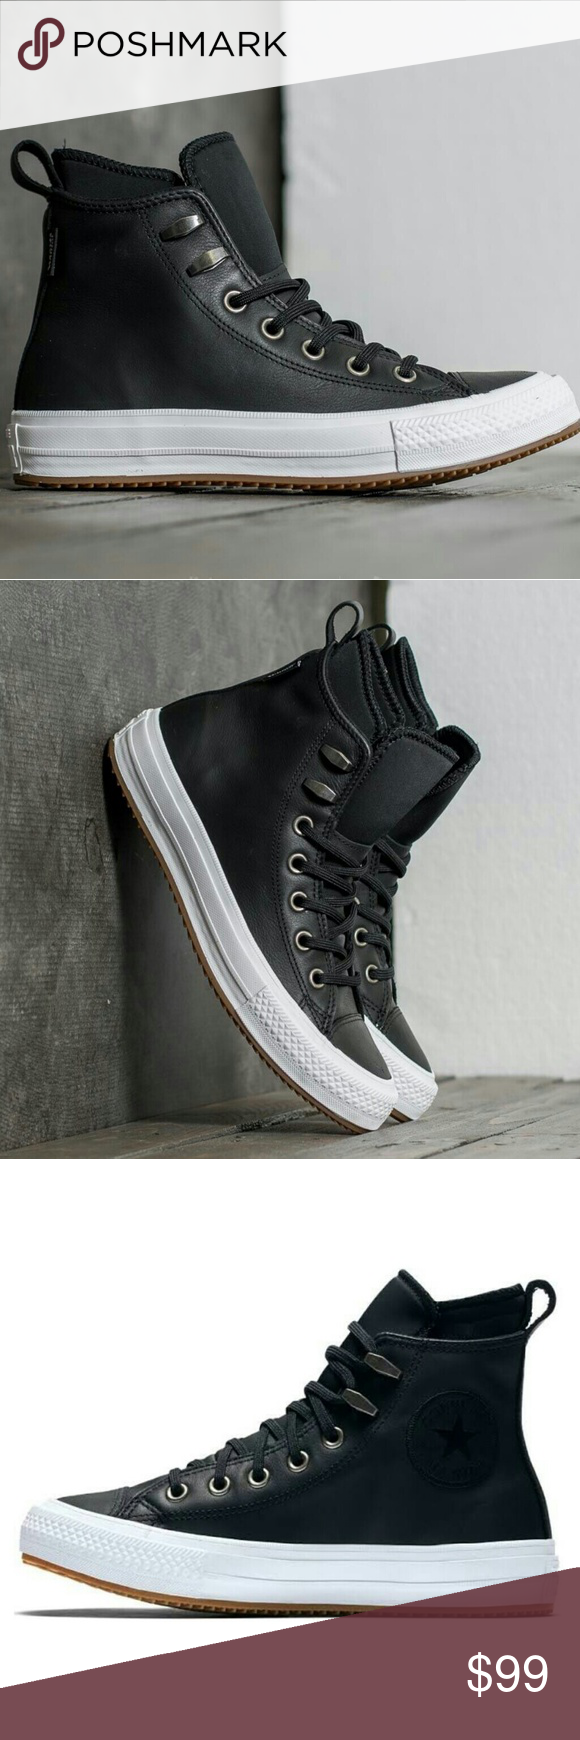 Converse Lunarlon Insole For Sale Sale Converse Waterproof Black Leather Boot Shoe Nwt Black